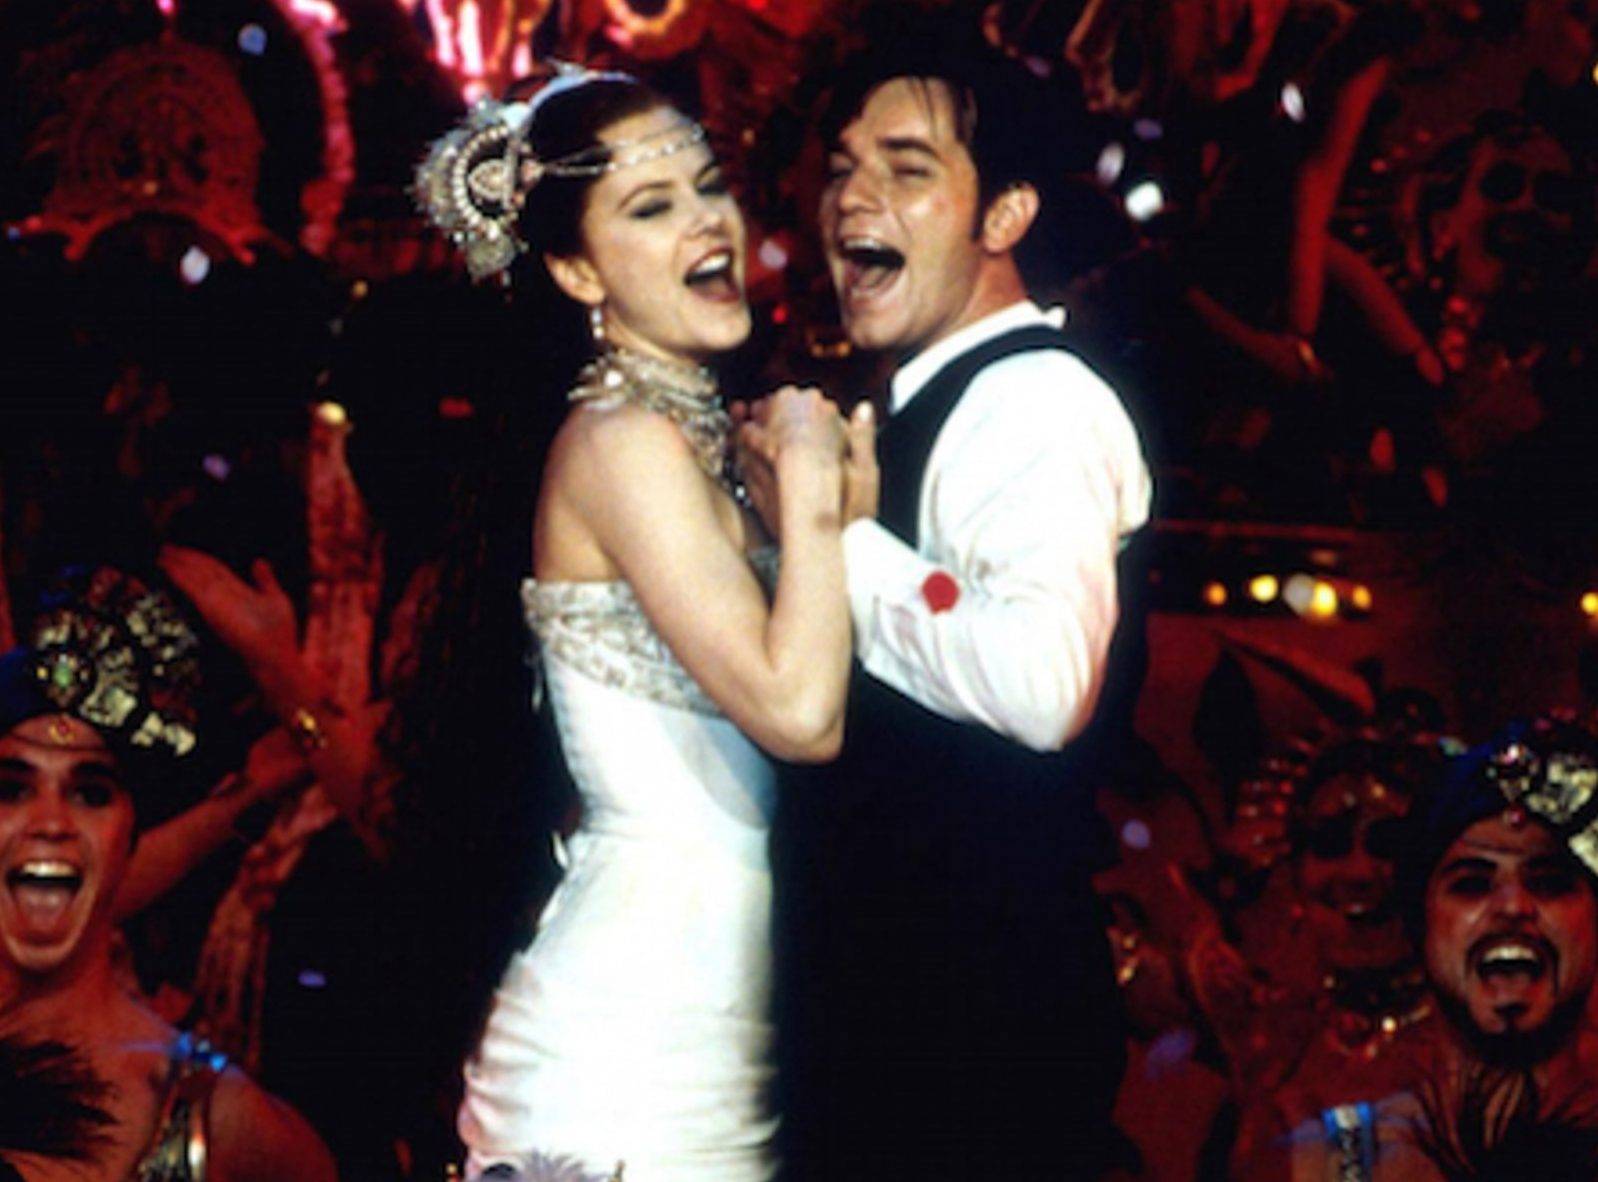 moulin rouge 0 e1617181991661 10 Things You Didn't Know About Moulin Rouge!